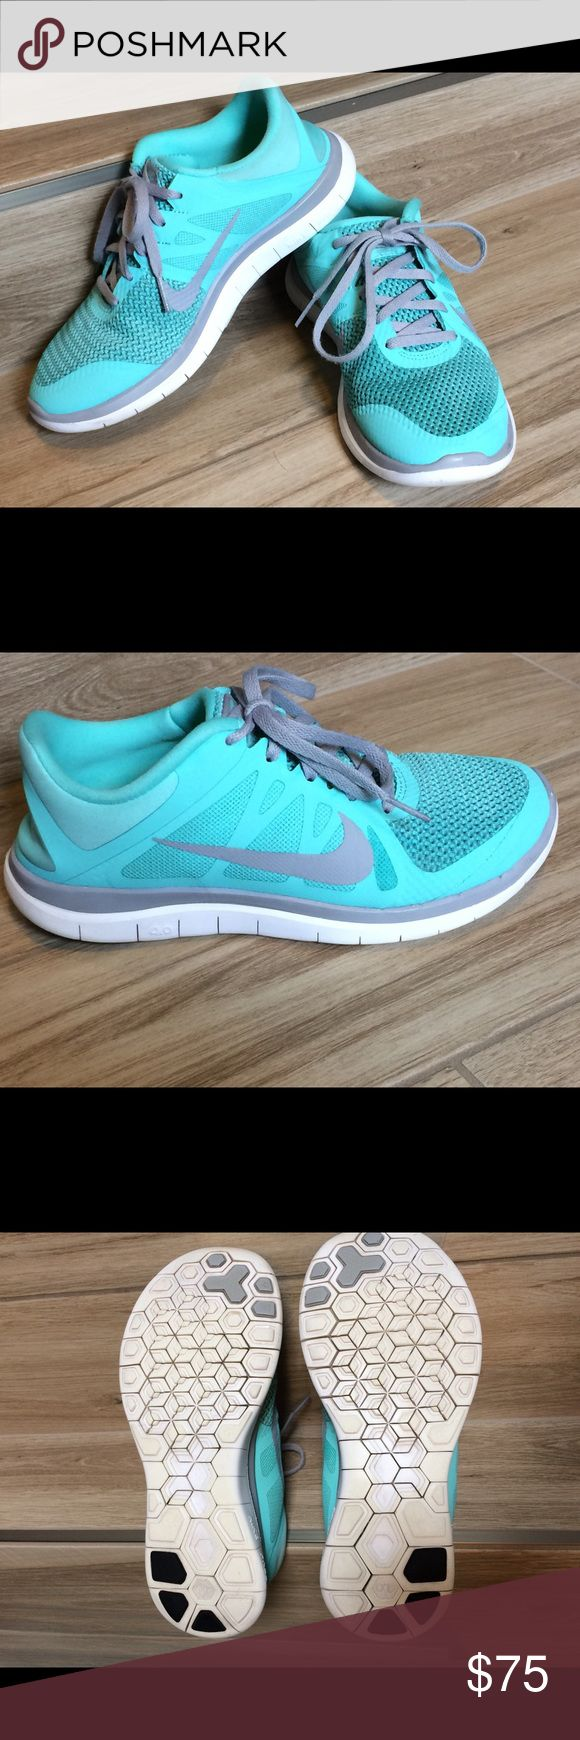 Women's NIKE Free Run 4.0 Tiffany blue NIKE free run 4.0, size 7.5.  Great used condition and a lot of life left.  Retired color and style! Nike Shoes Athletic Shoes